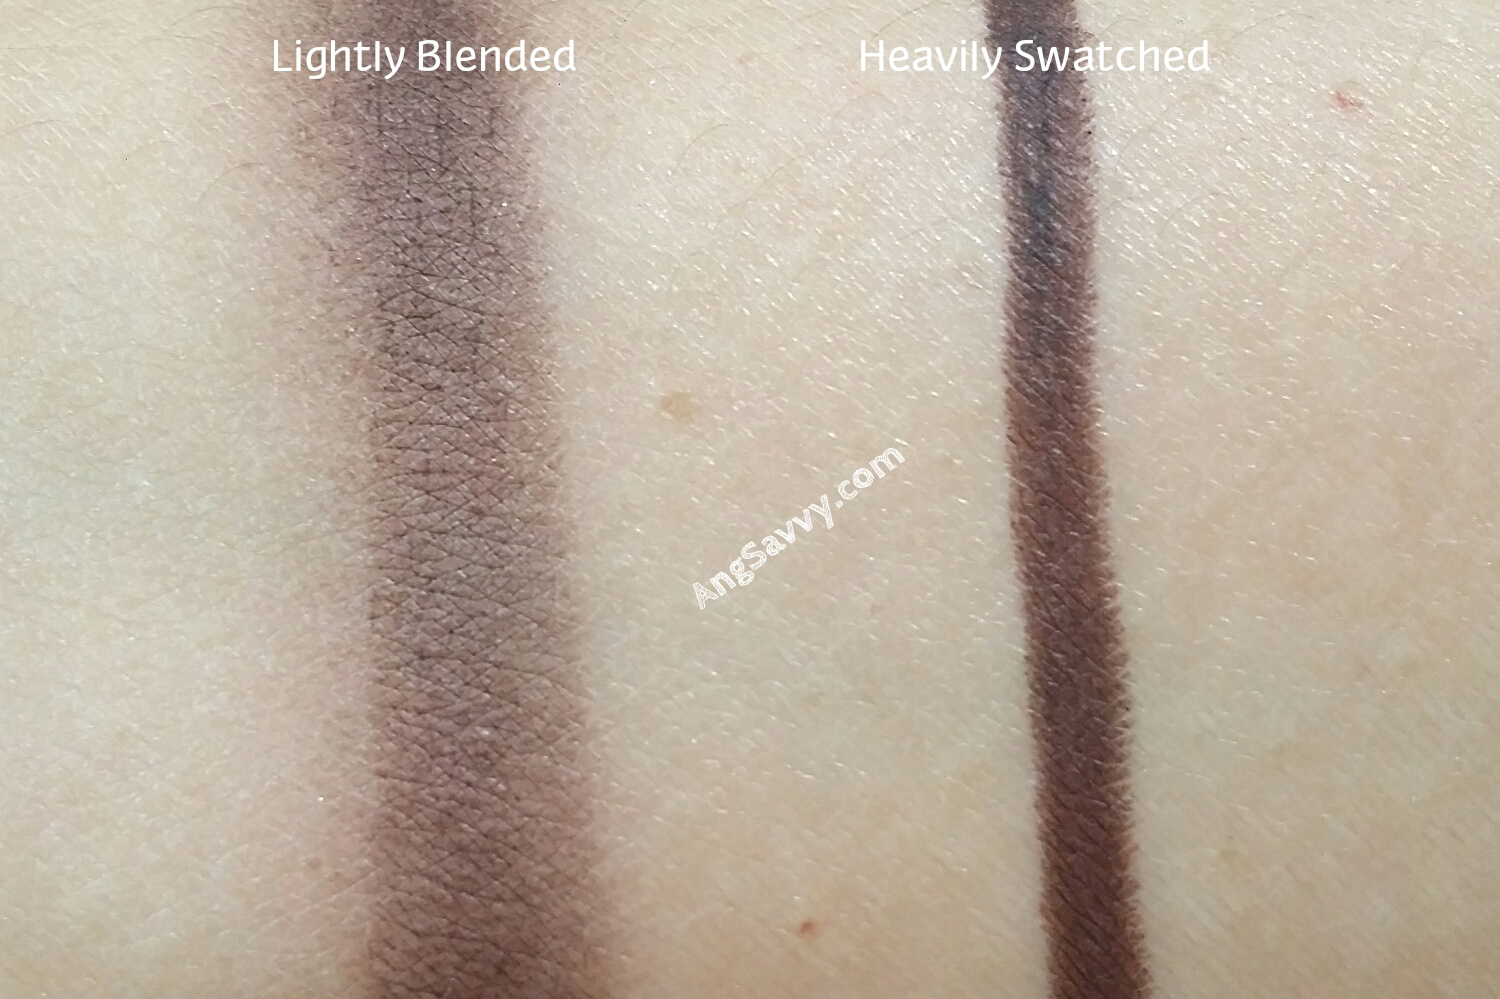 Etude House Play 101 Pencil 50 Swatches